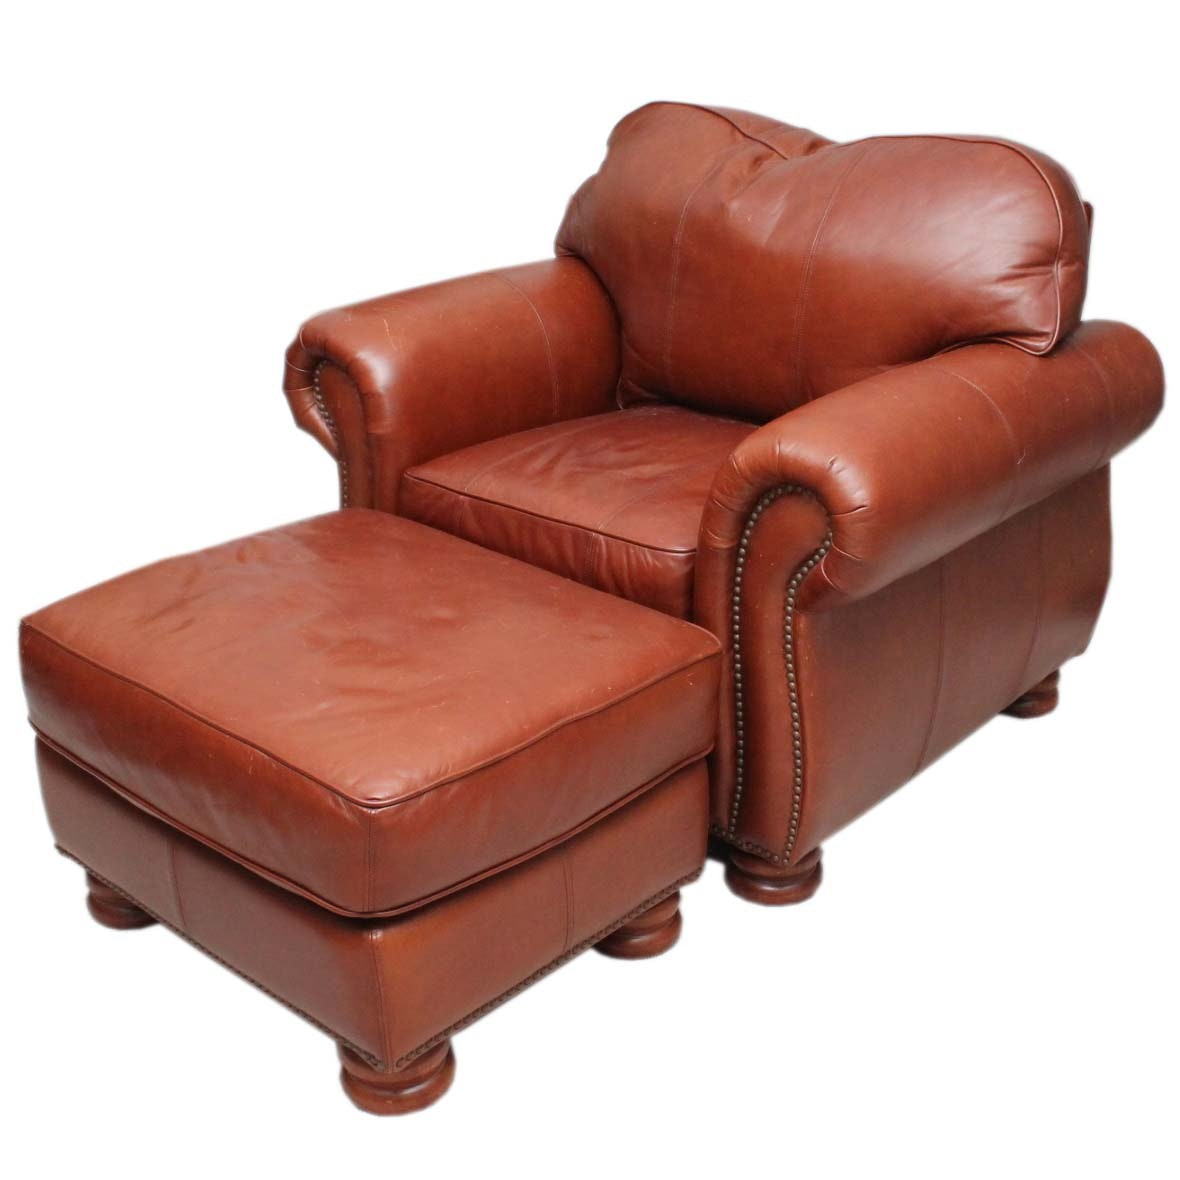 Thomasville Brown Leather Chair and Ottoman